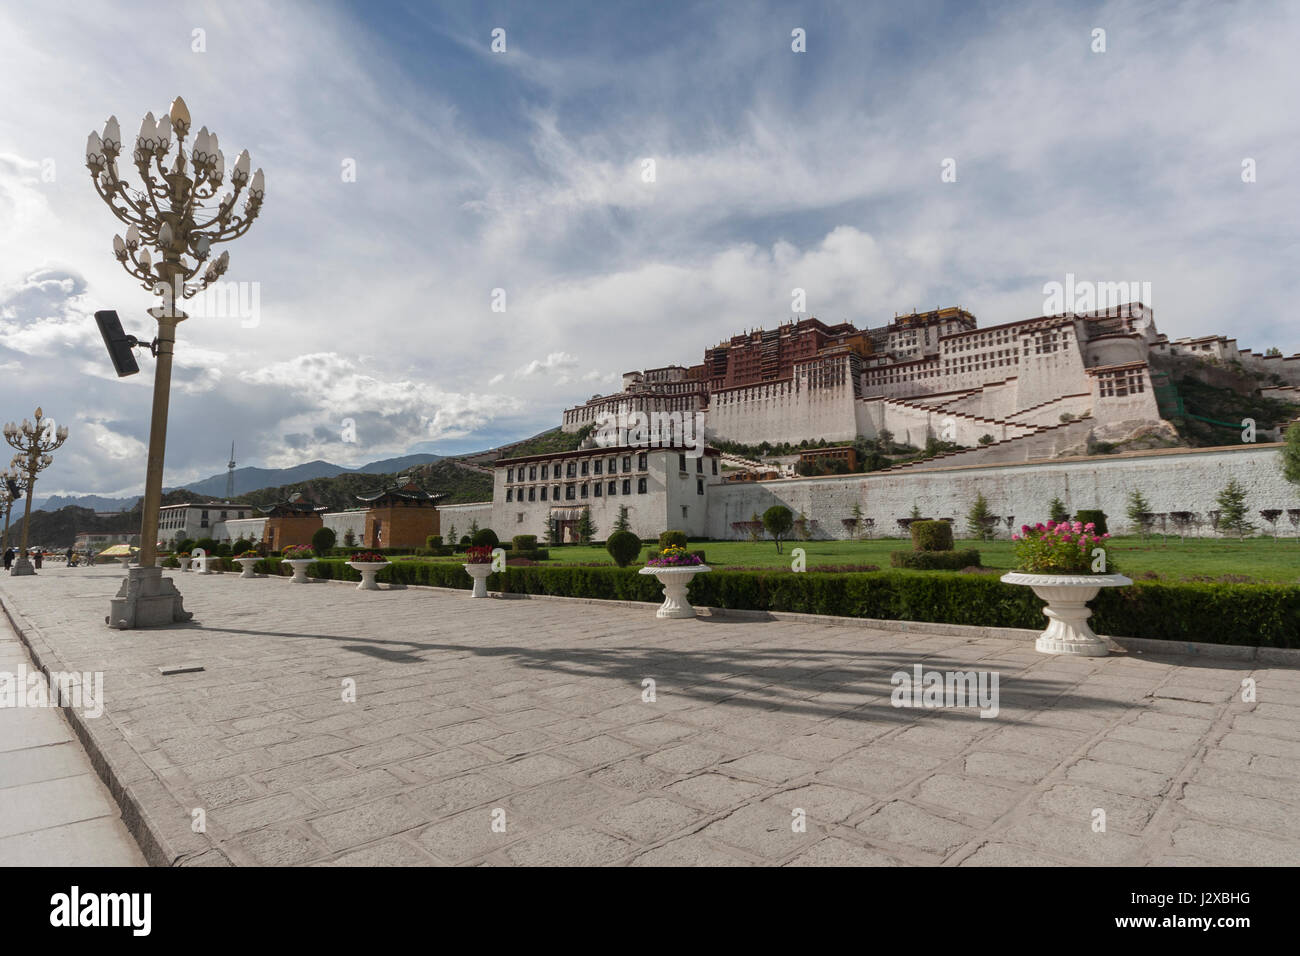 Wide angle view of Potala Palace in late afternoon sunlight, Lhasa, Tibet - Stock Image